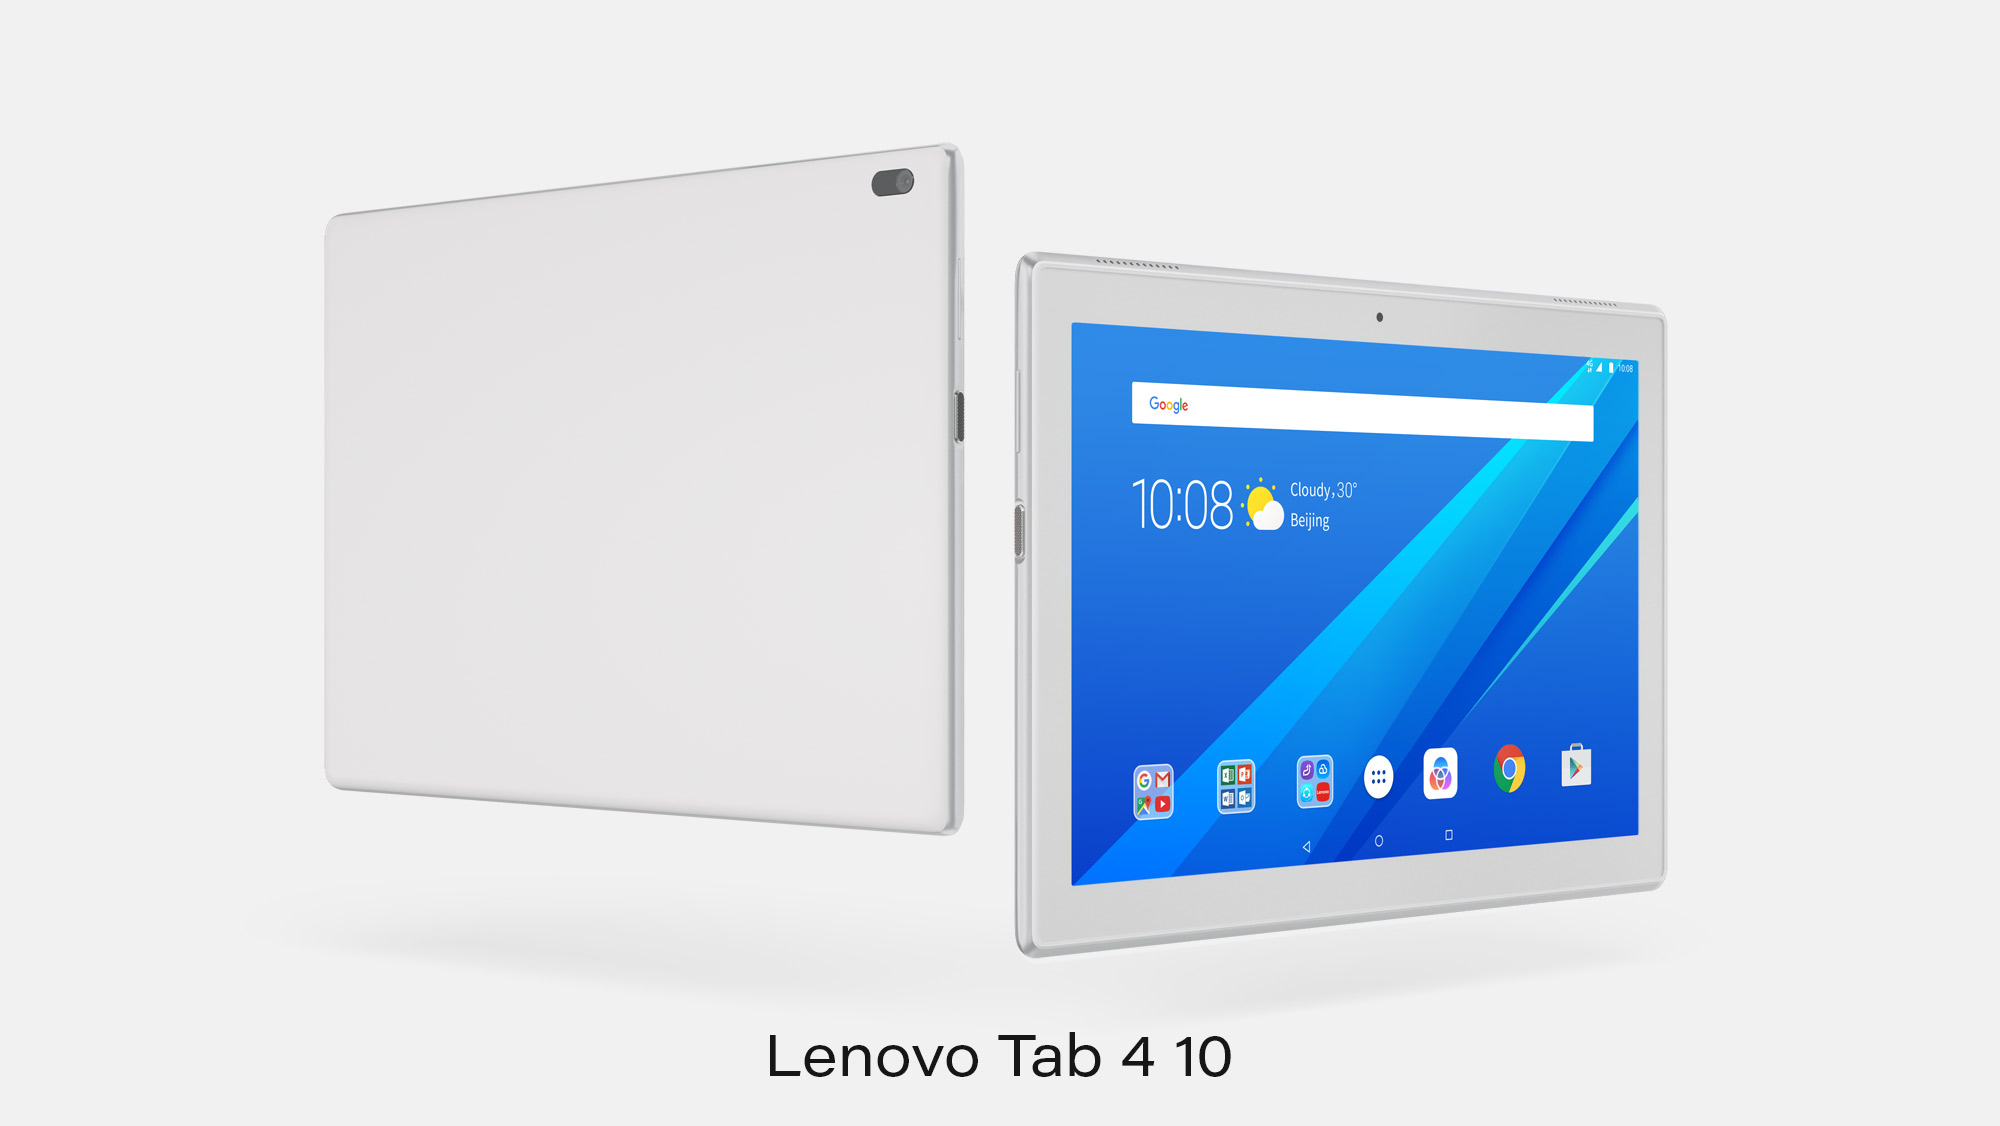 We Take The Tablet Concept Ever Further With Optional Packs That Transform  The Lenovo Tab 4 Series Into Dedicated Kid's Tablets Or Productivity  Tablets